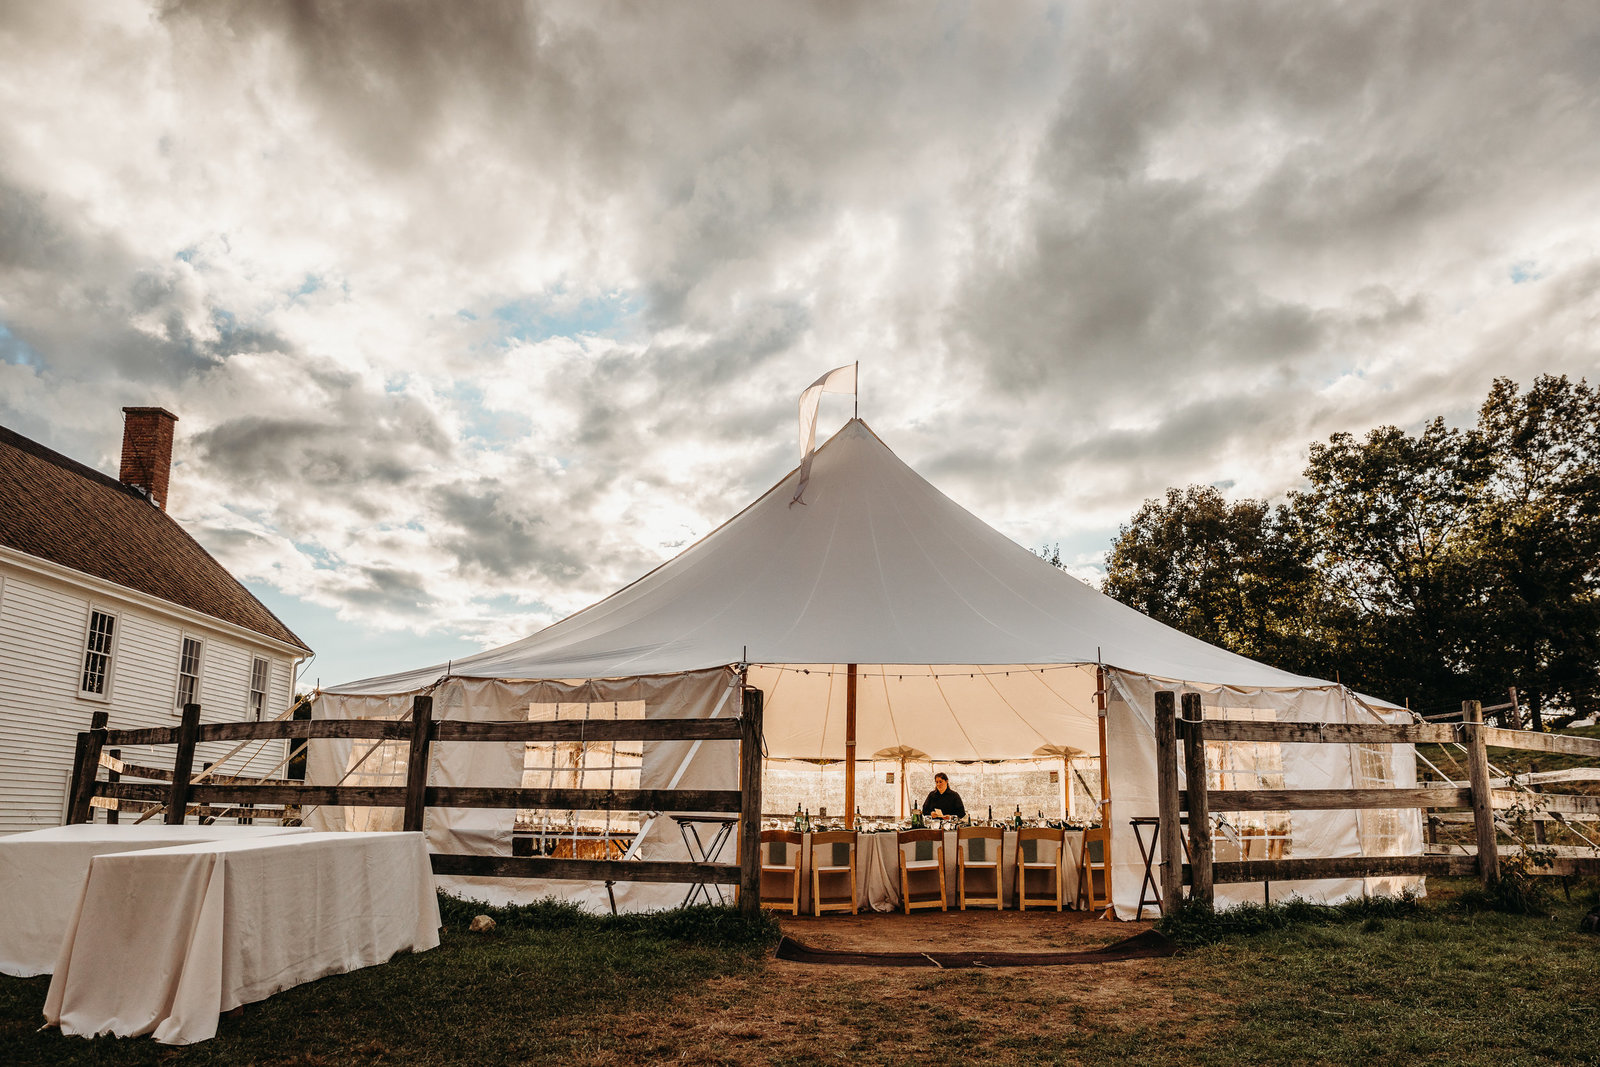 tented wedding under stormy sky in boston ma